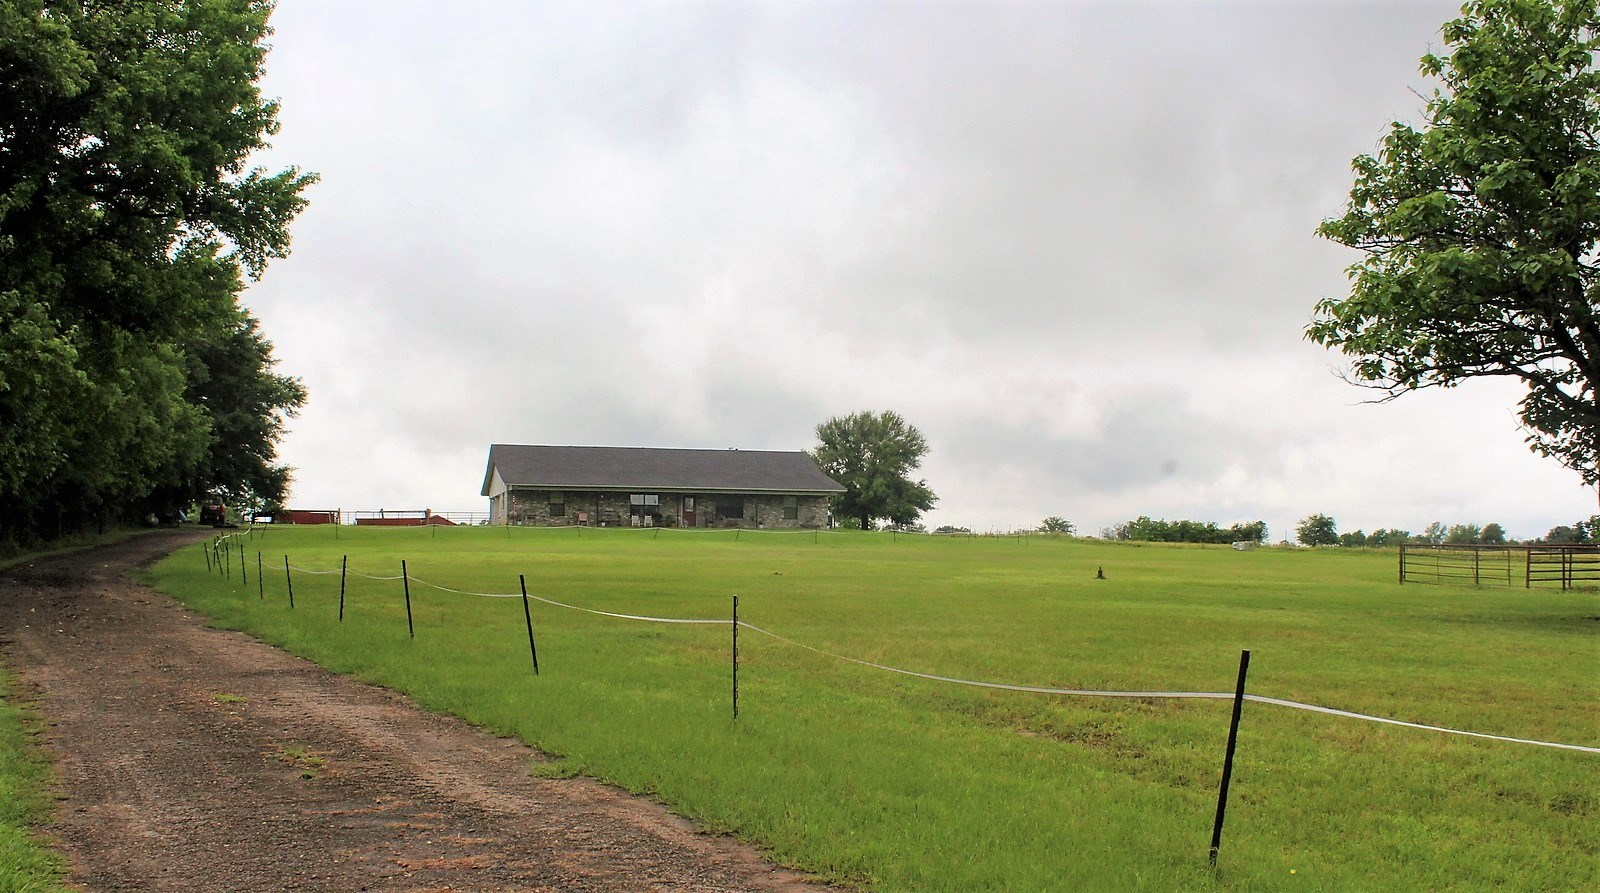 EAST TEXAS COUNTRY HOME 13 ACRES CROSS FENCED CORRALS